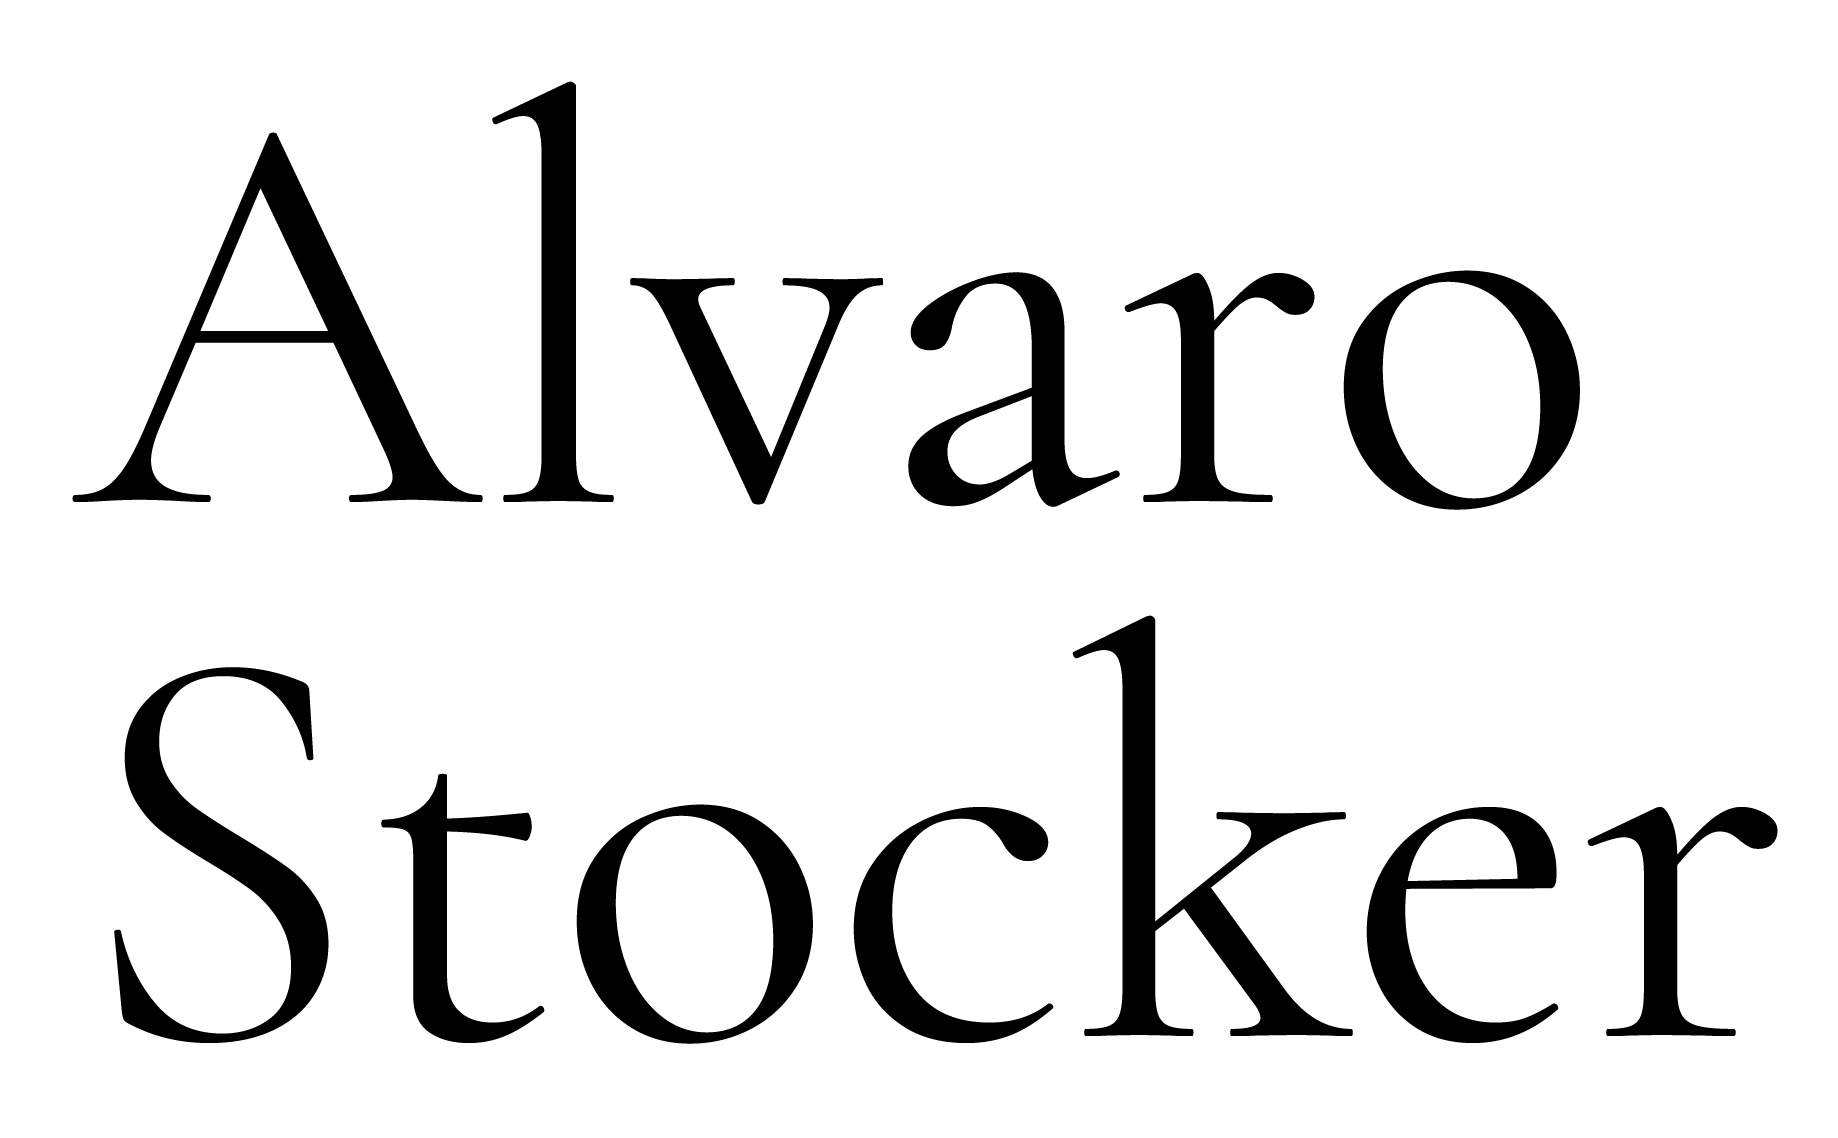 Álvaro Stocker